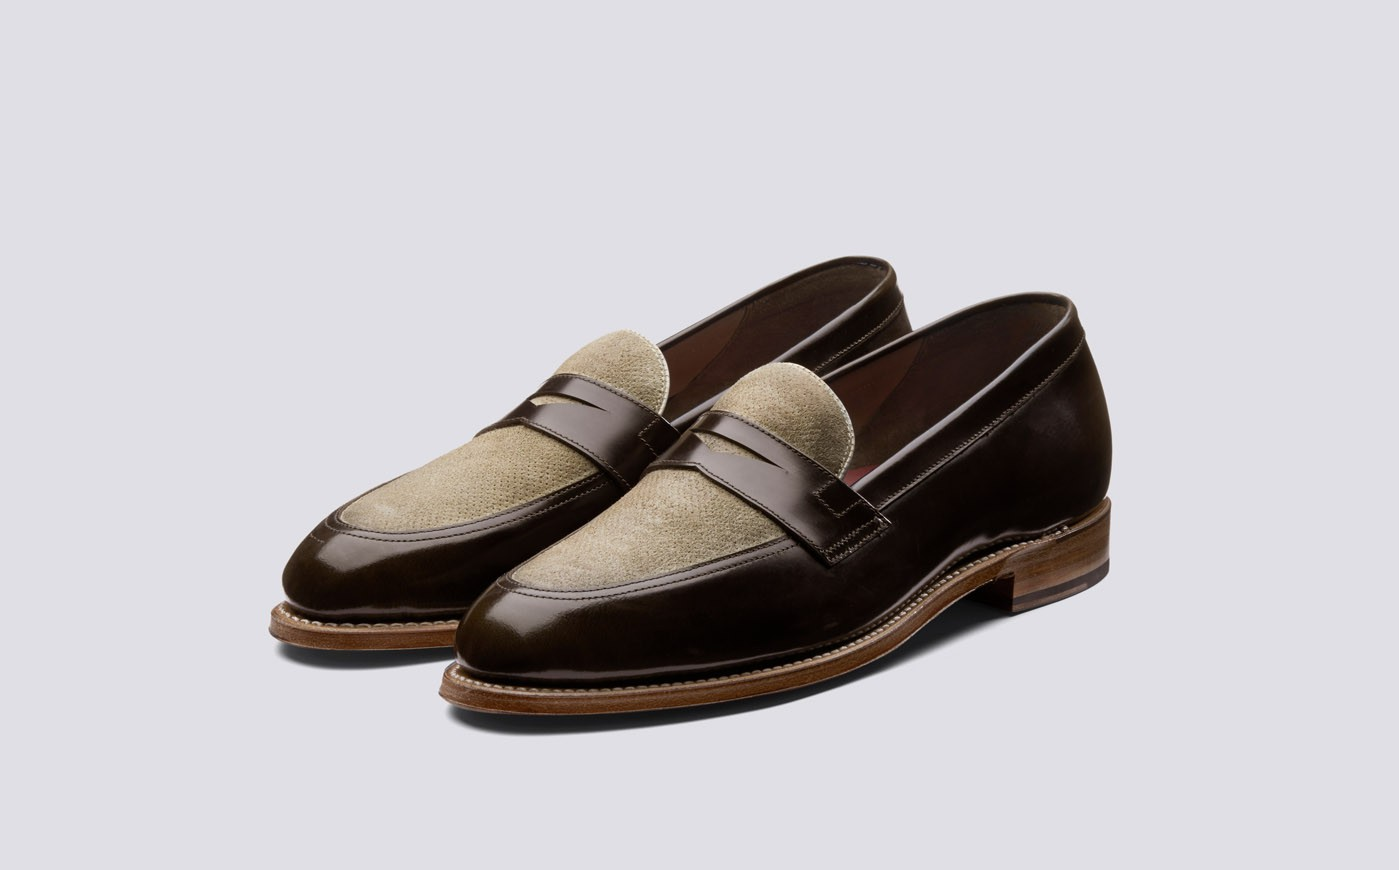 Grenson loafers - £215.00 - Beyond obsessed. Roll on summer so we can wear these with a pair of pleated cream trousers